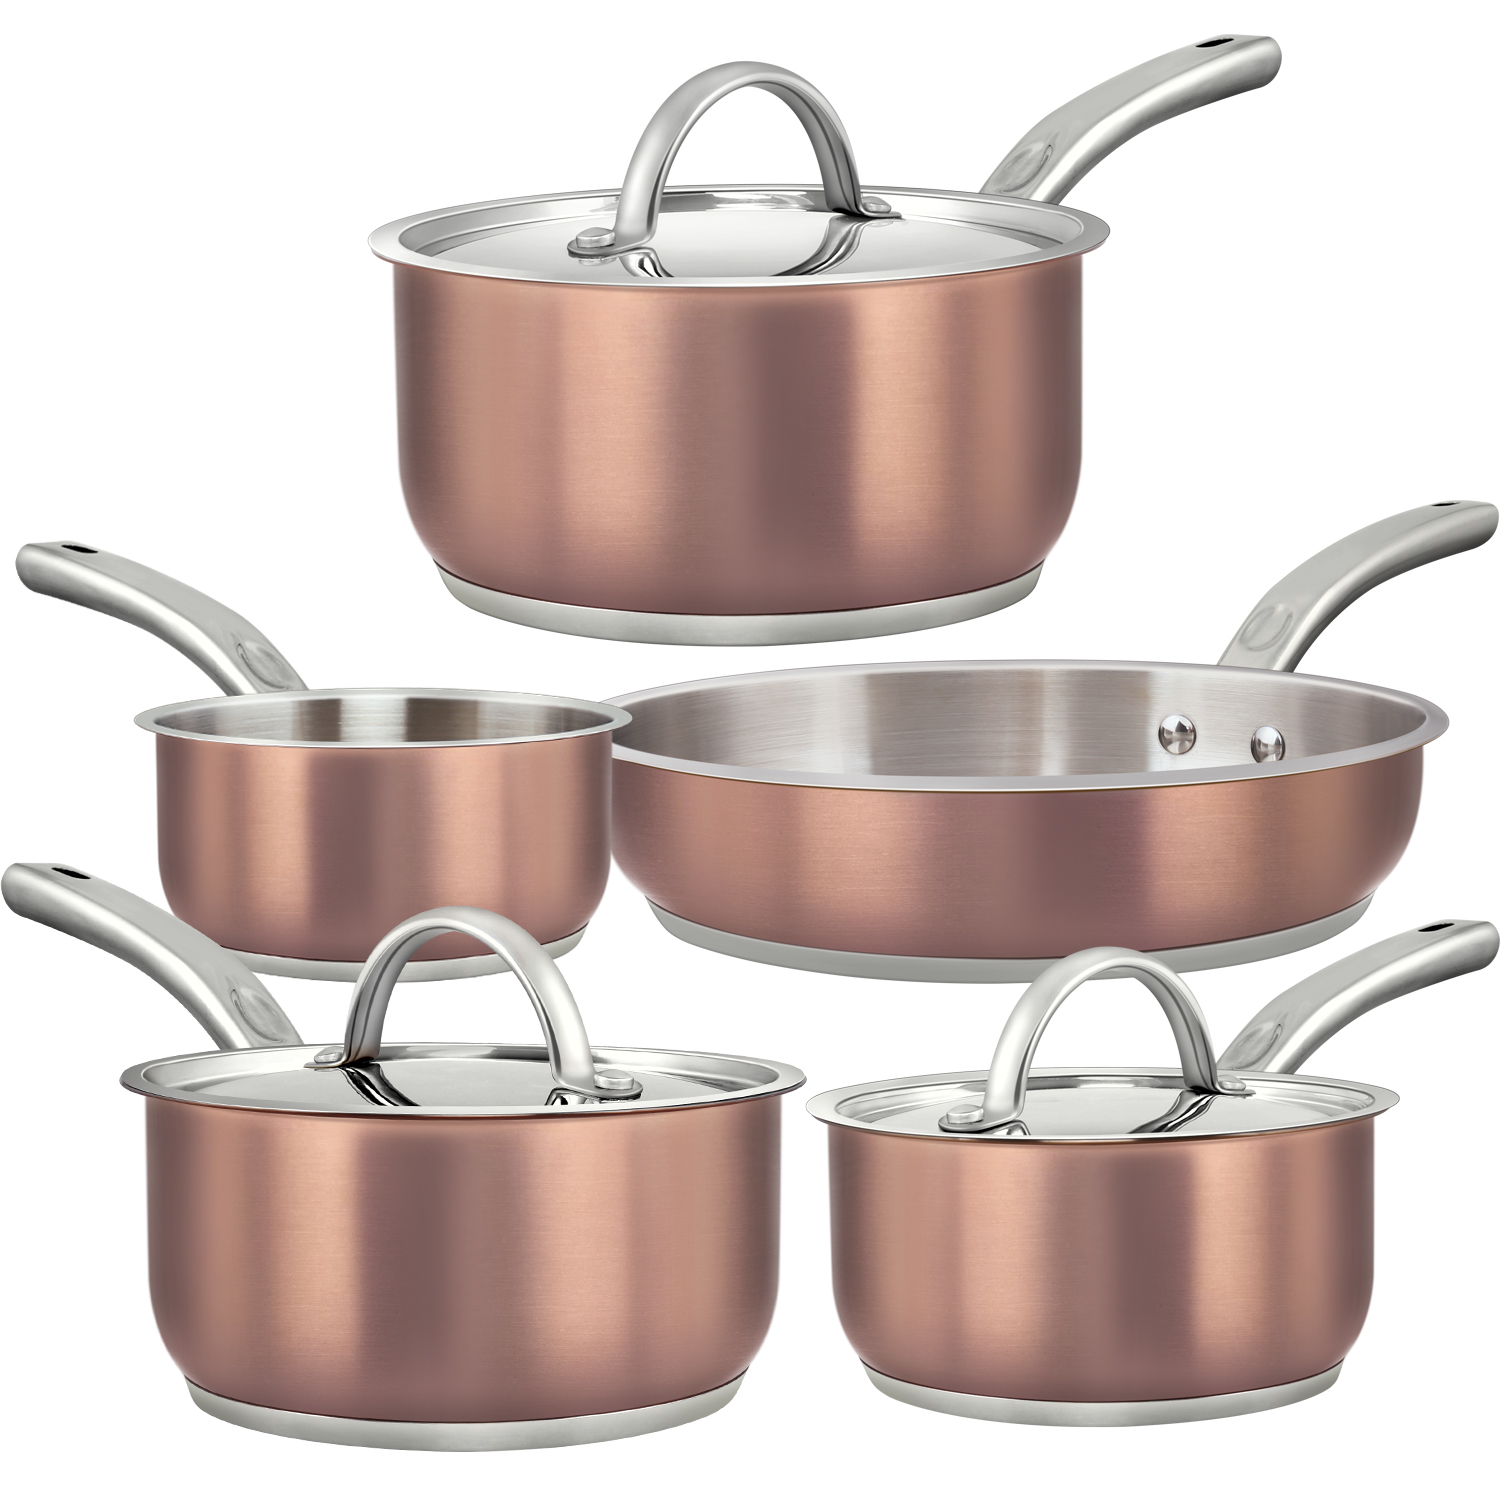 Tri-Ply Copper Non-Stick Cookware Set, Save $10 with Amazon Coupon